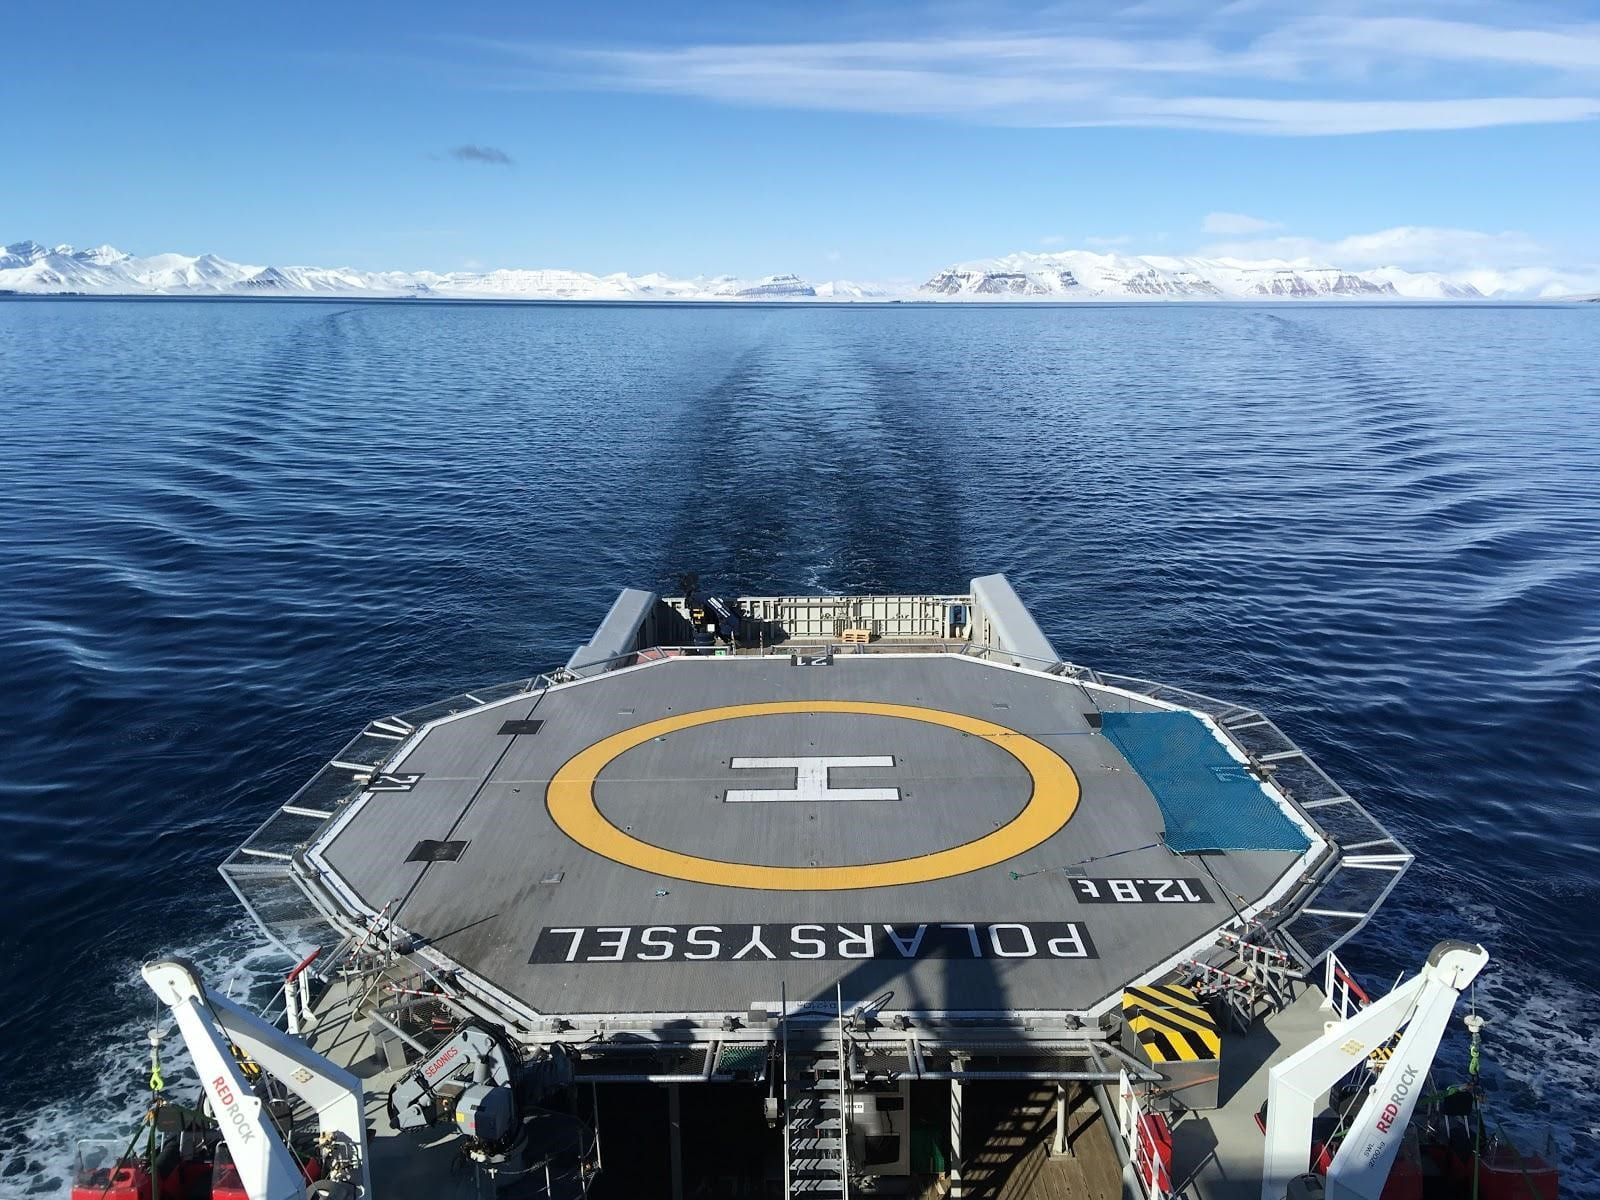 Large flat, government boat with letter H in yellow circle in Arctic waters